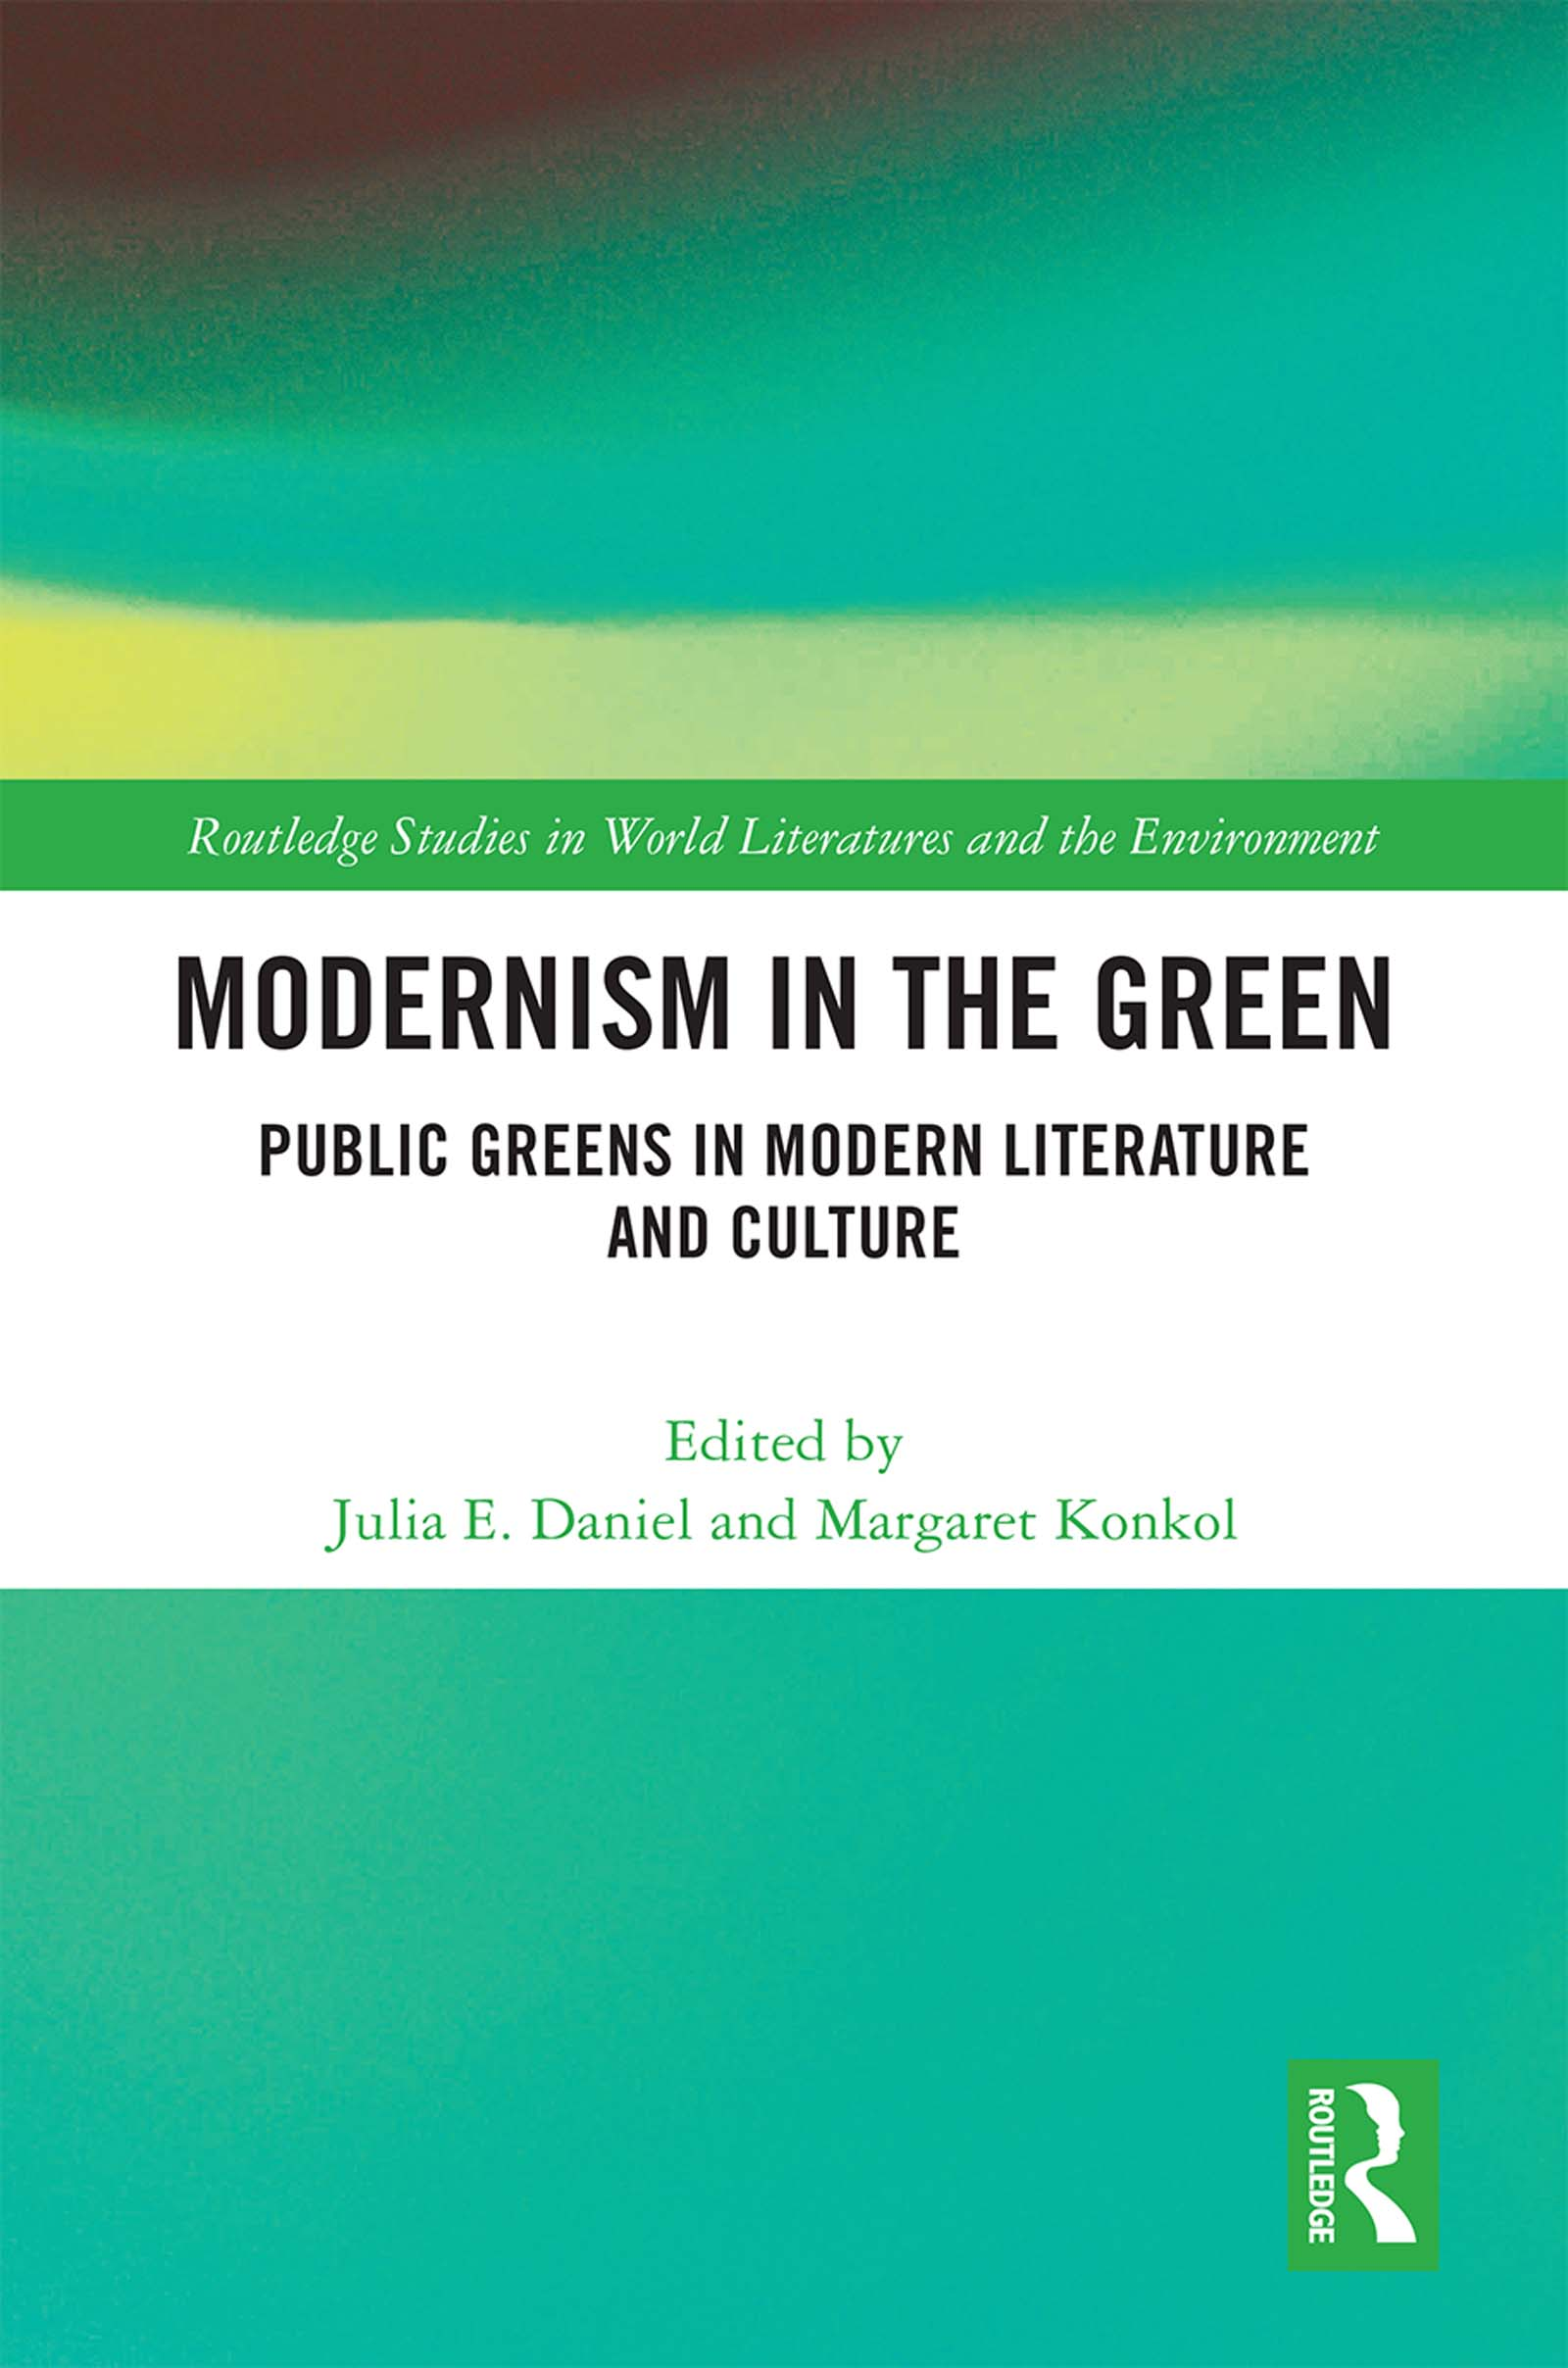 Modernism in the Green